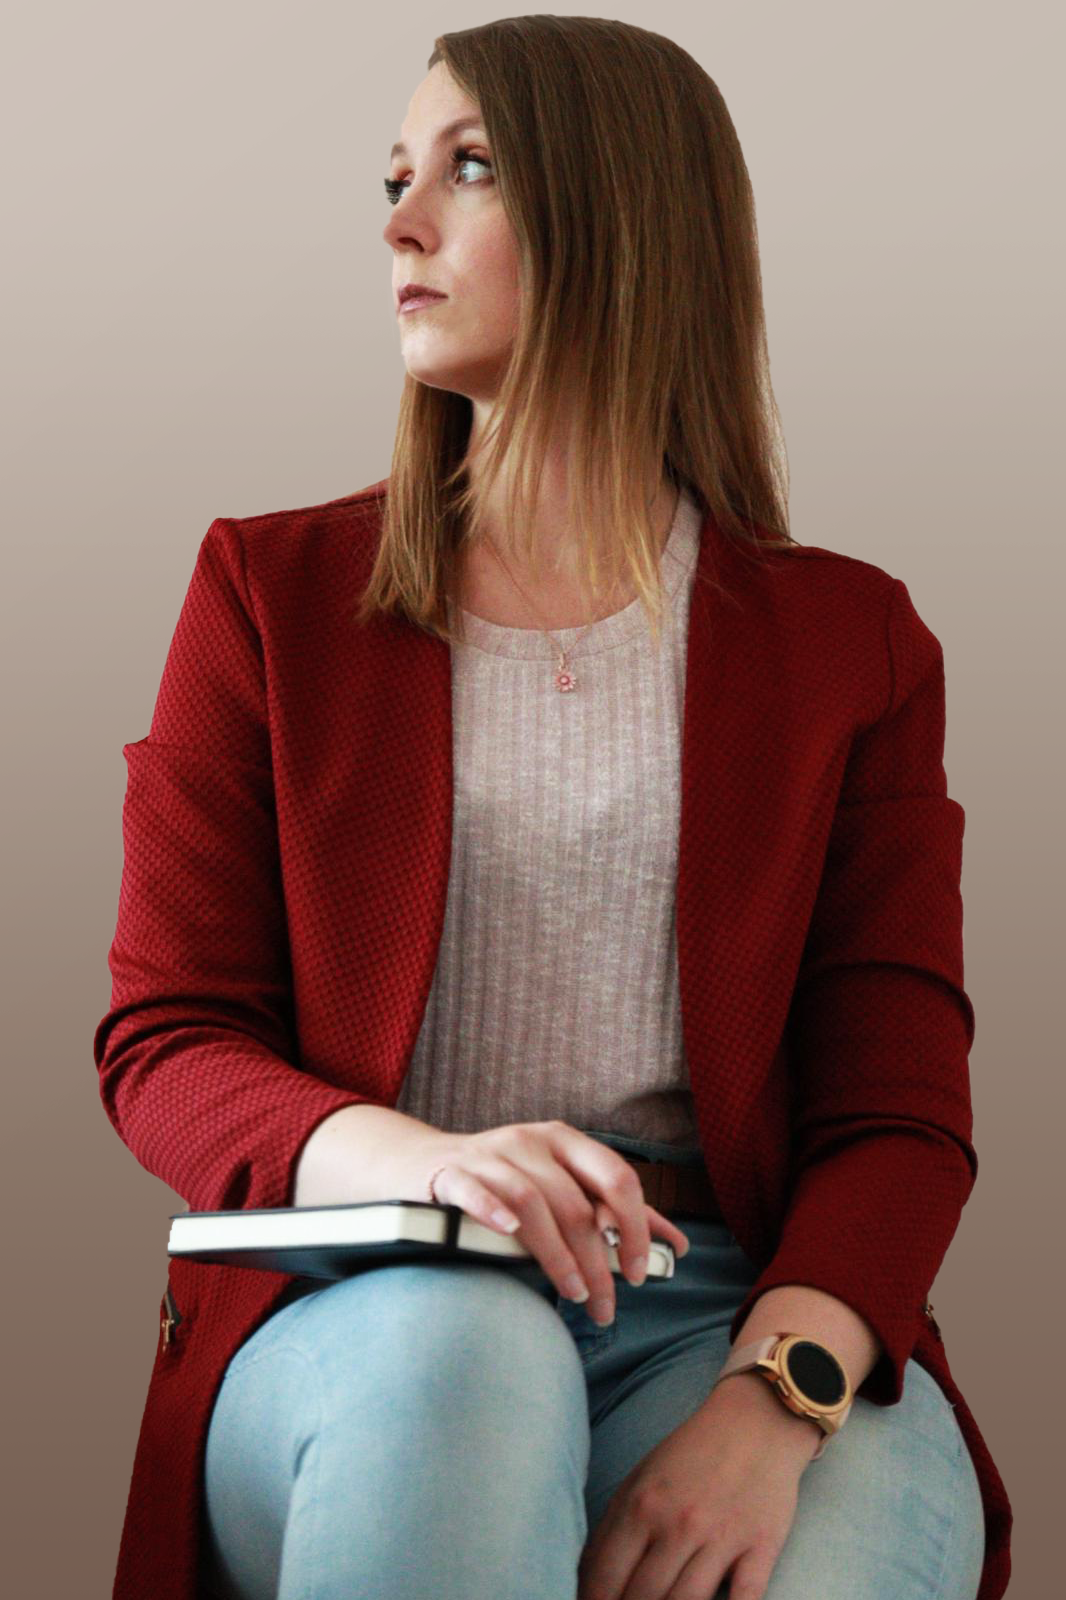 picture of the artist, Jaqueline Martin, with the head turned to the left in a red jacket